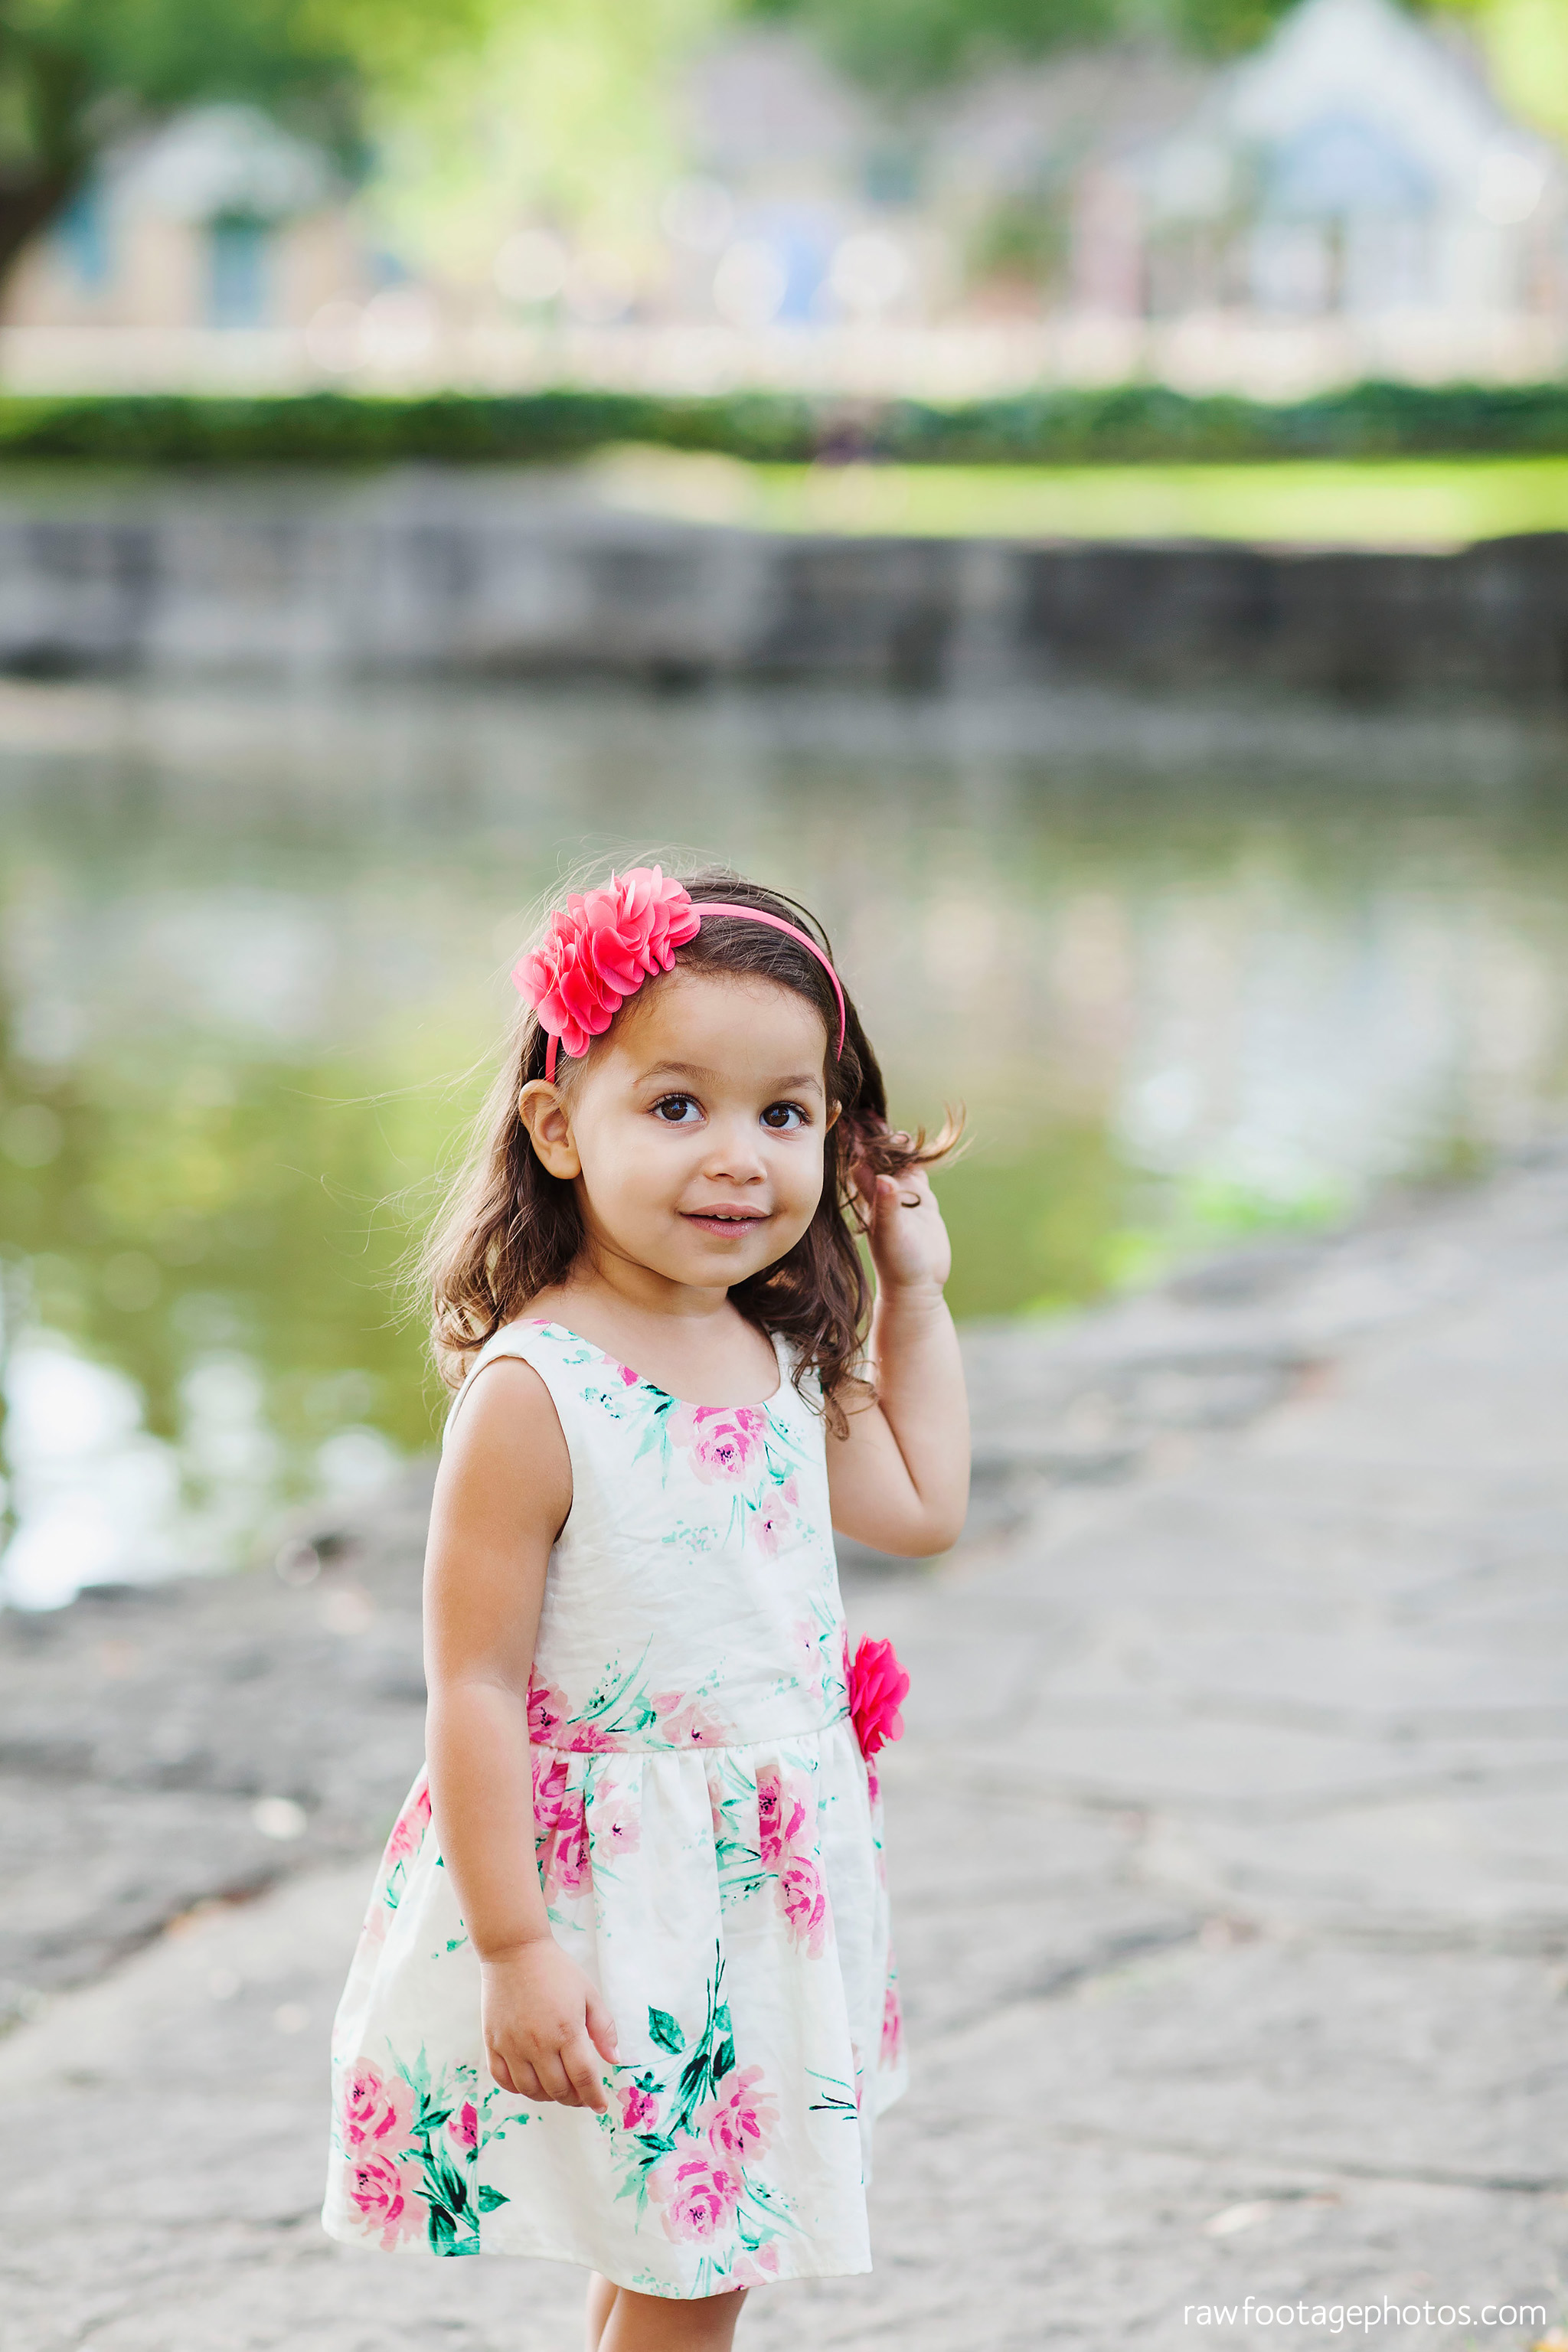 london_ontario_family_photographer-stratford_ontario_photographer-raw_footage_photography-lifestyle_photography-candid-golden_hour018.jpg